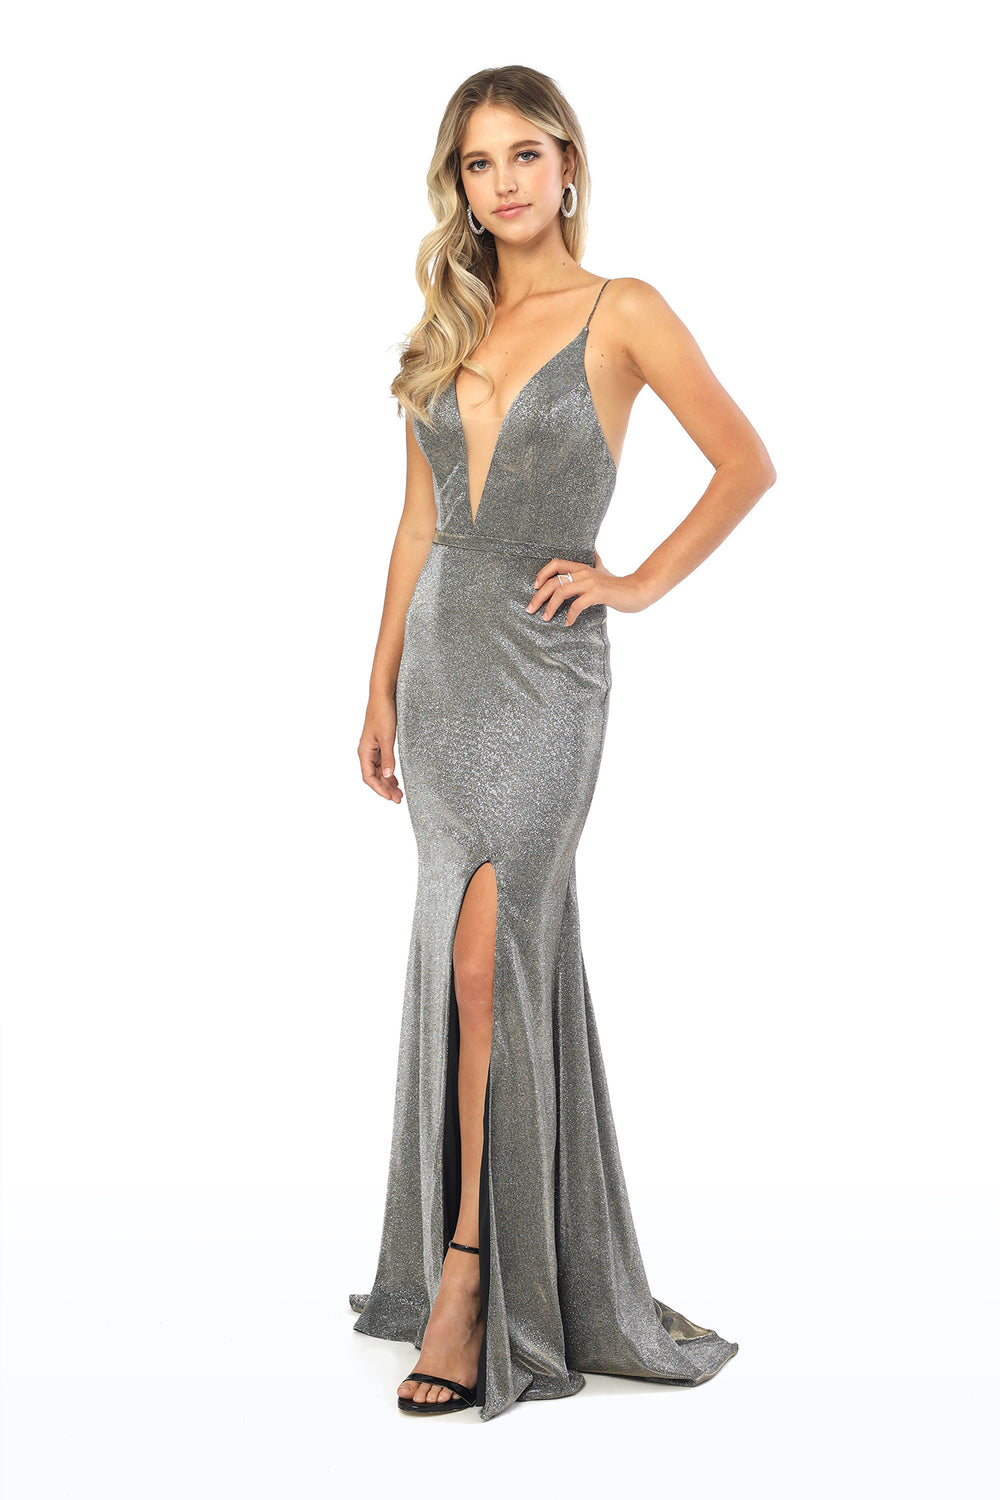 V-Neck Shimmer Long Train Dress_C234 BY NARIANNA